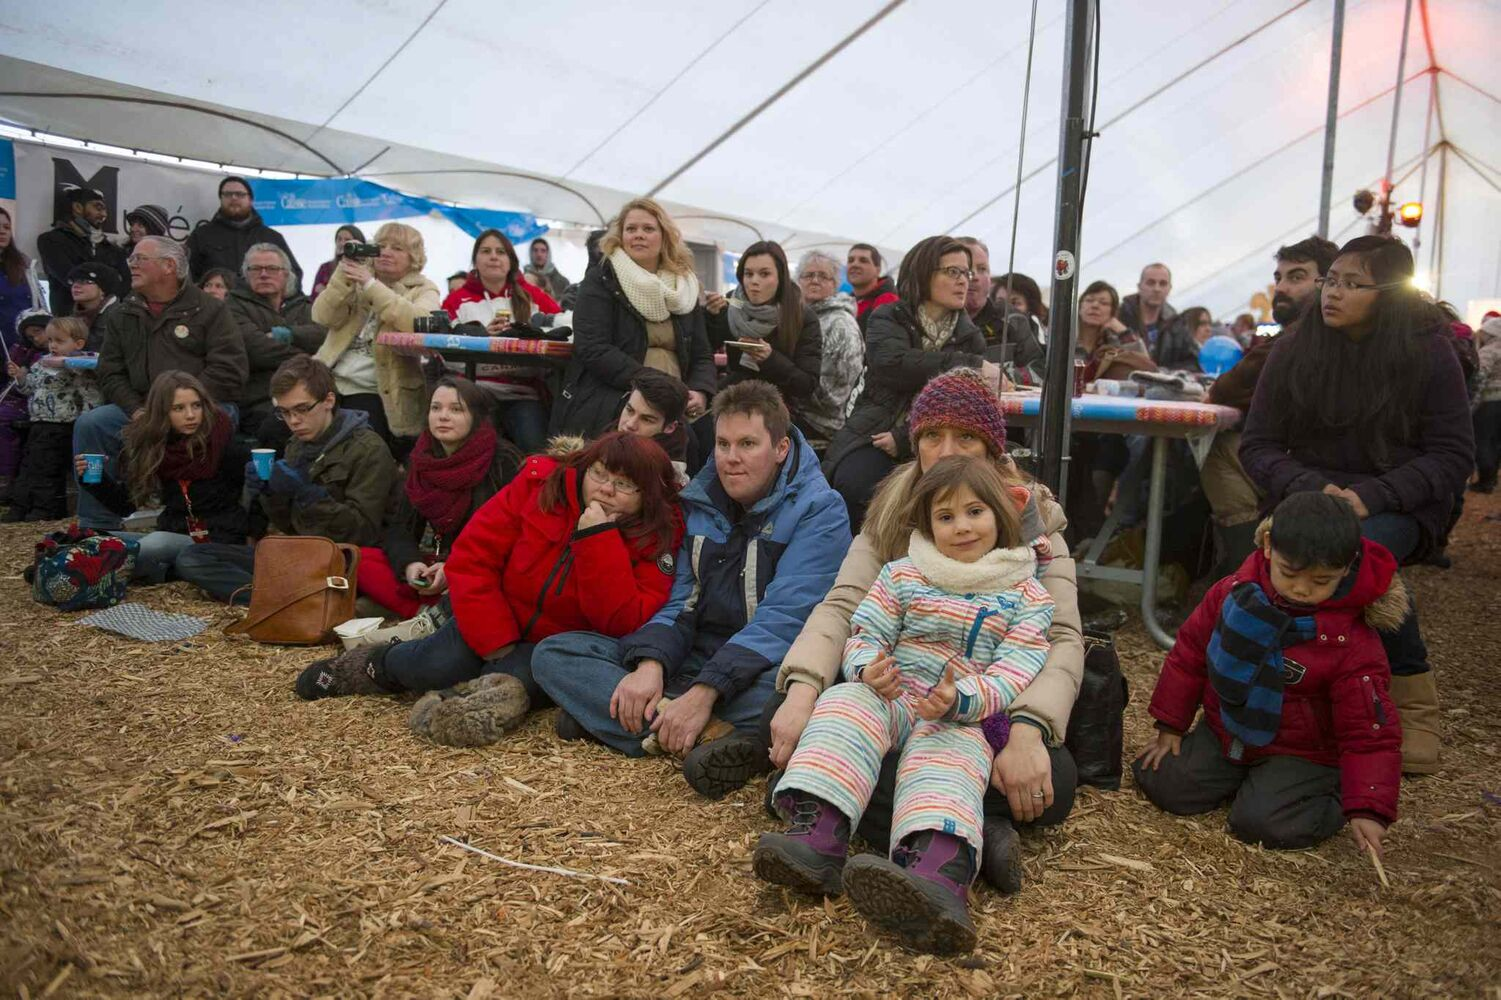 Crowds turned out to enjoy entertainment at Festival du Voyageur Feb. 22. (David Lipnowski / Winnipeg Free Press)